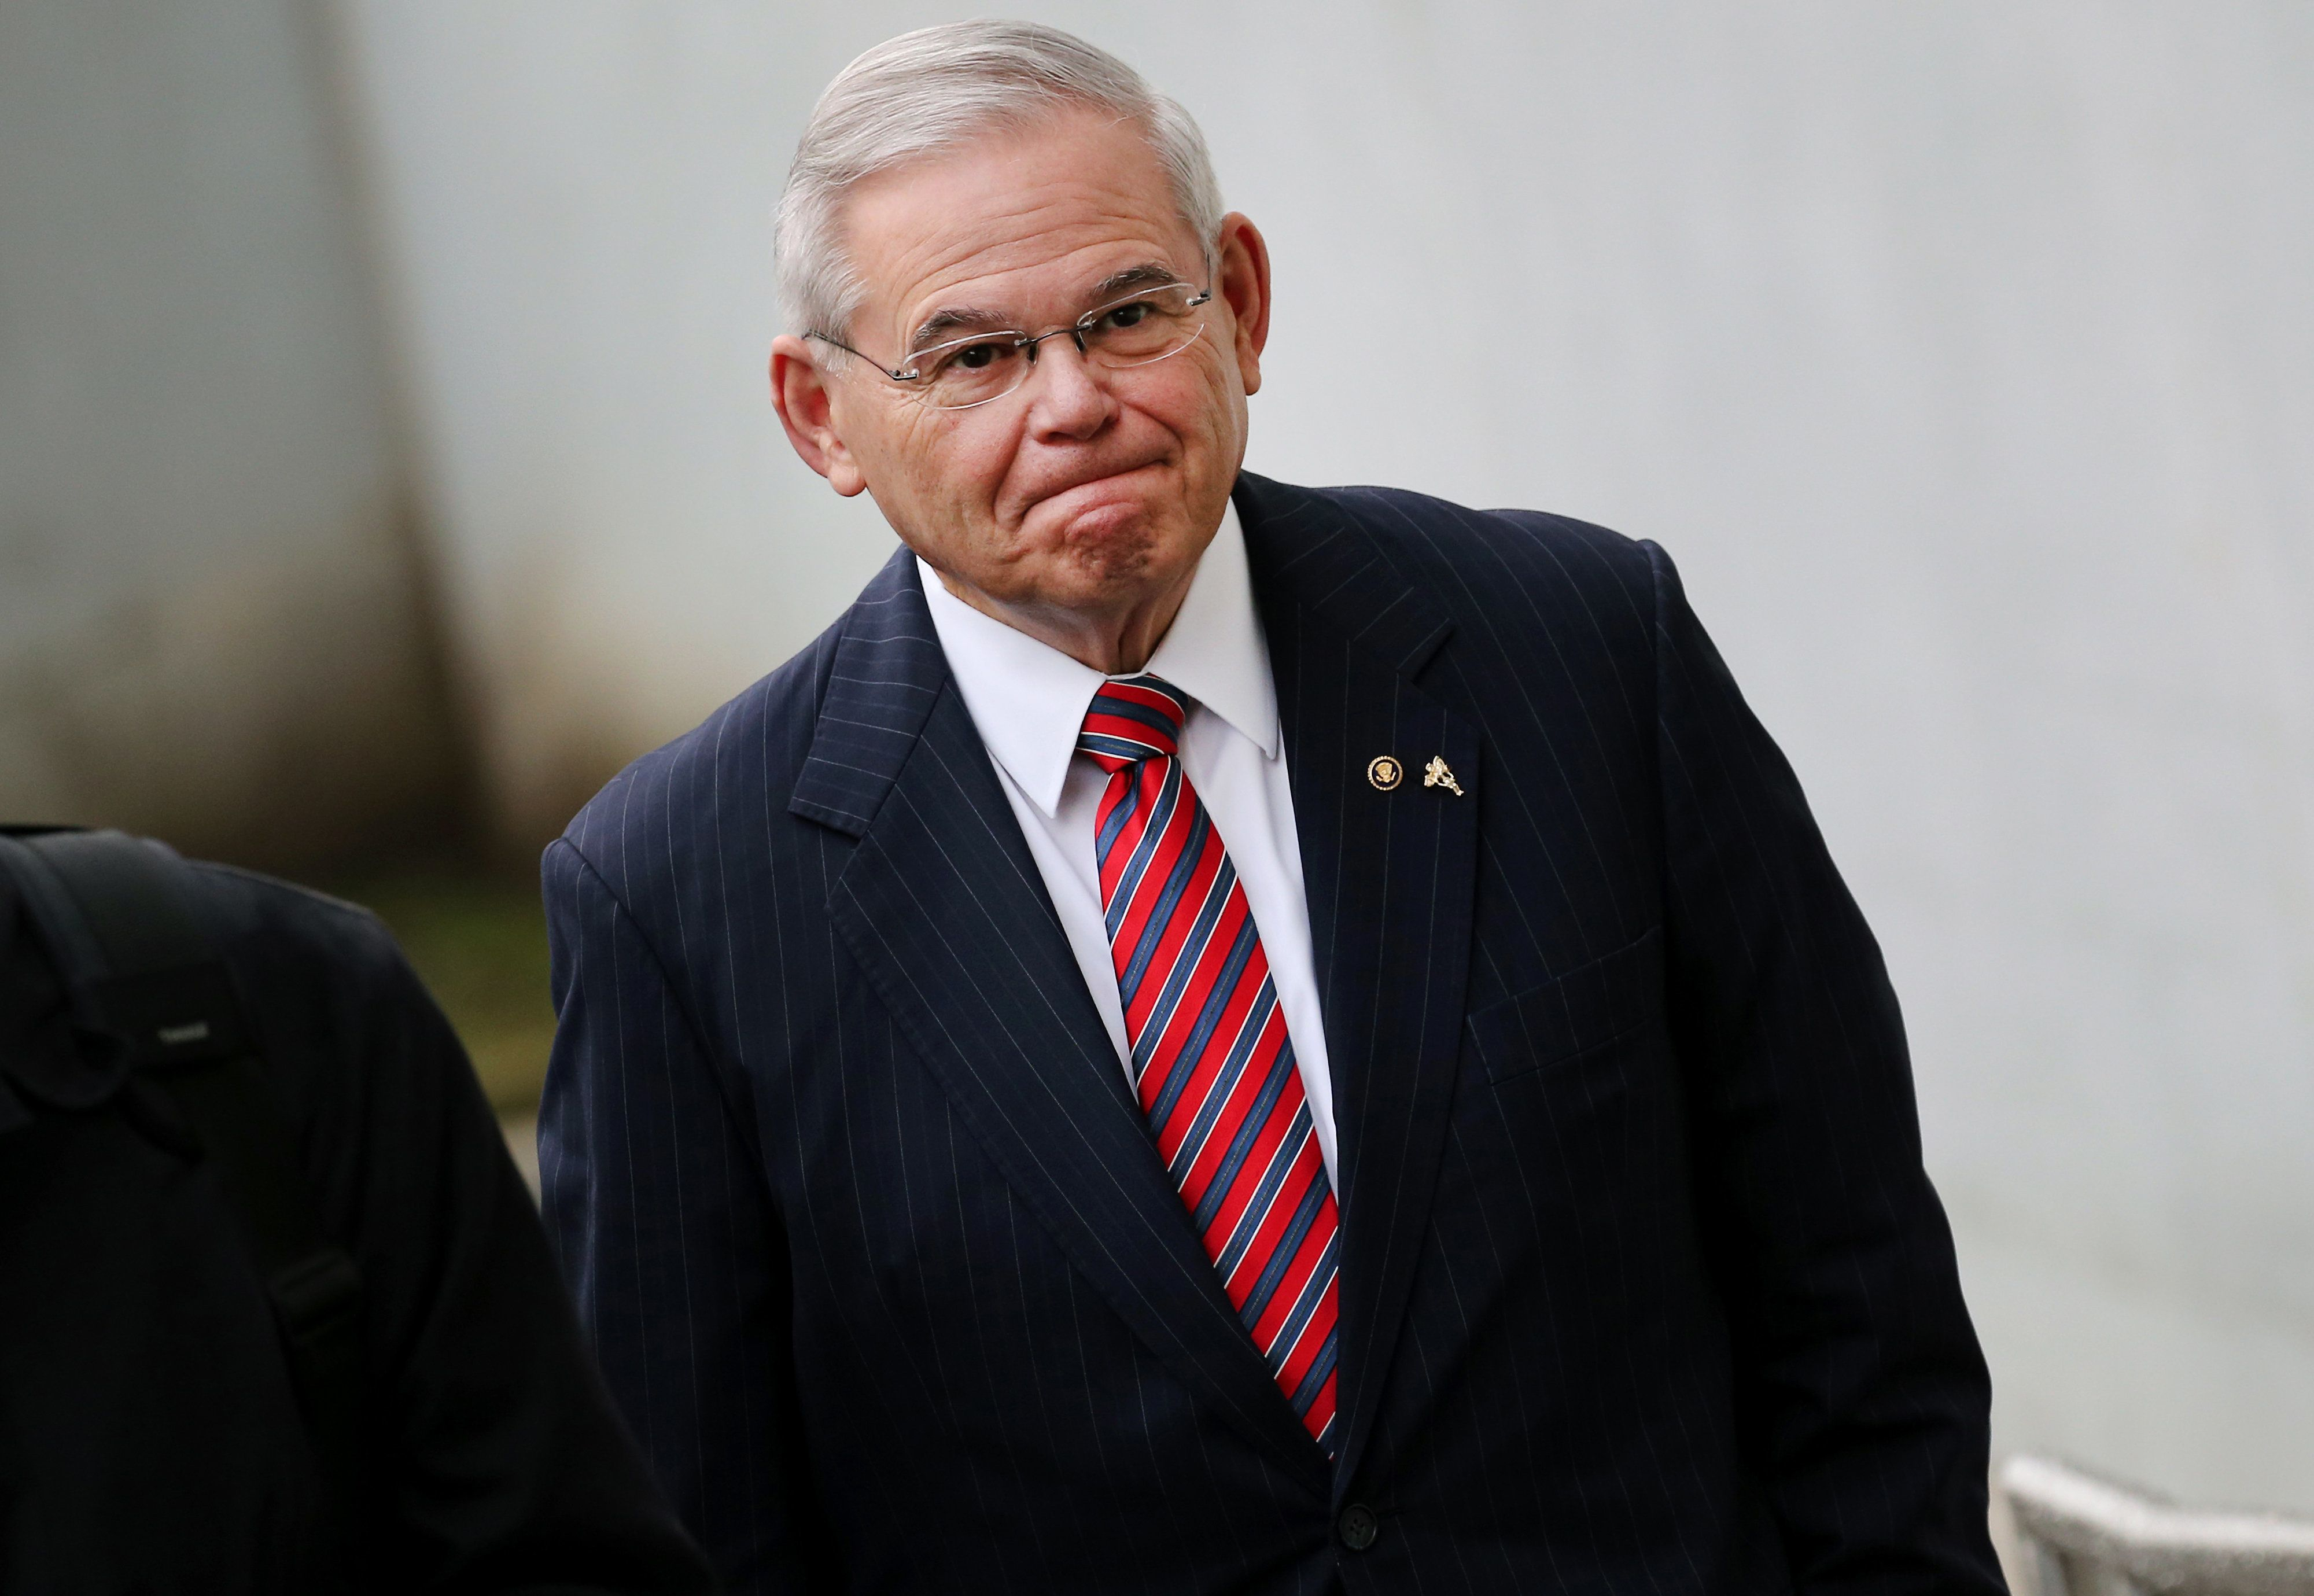 Senator Robert Menendez, a Democrat from New Jersey, arrives at federal court in Newark, New Jersey, U.S., on Thursday, Nov. 16 2017. Jurors at the bribery trial of Menendez failed again to reach a verdict during their sixth full day of deliberations before returning bleary-eyed to the courtroom where the judge sent them home. Photographer: Peter Foley/Bloomberg via Getty Images